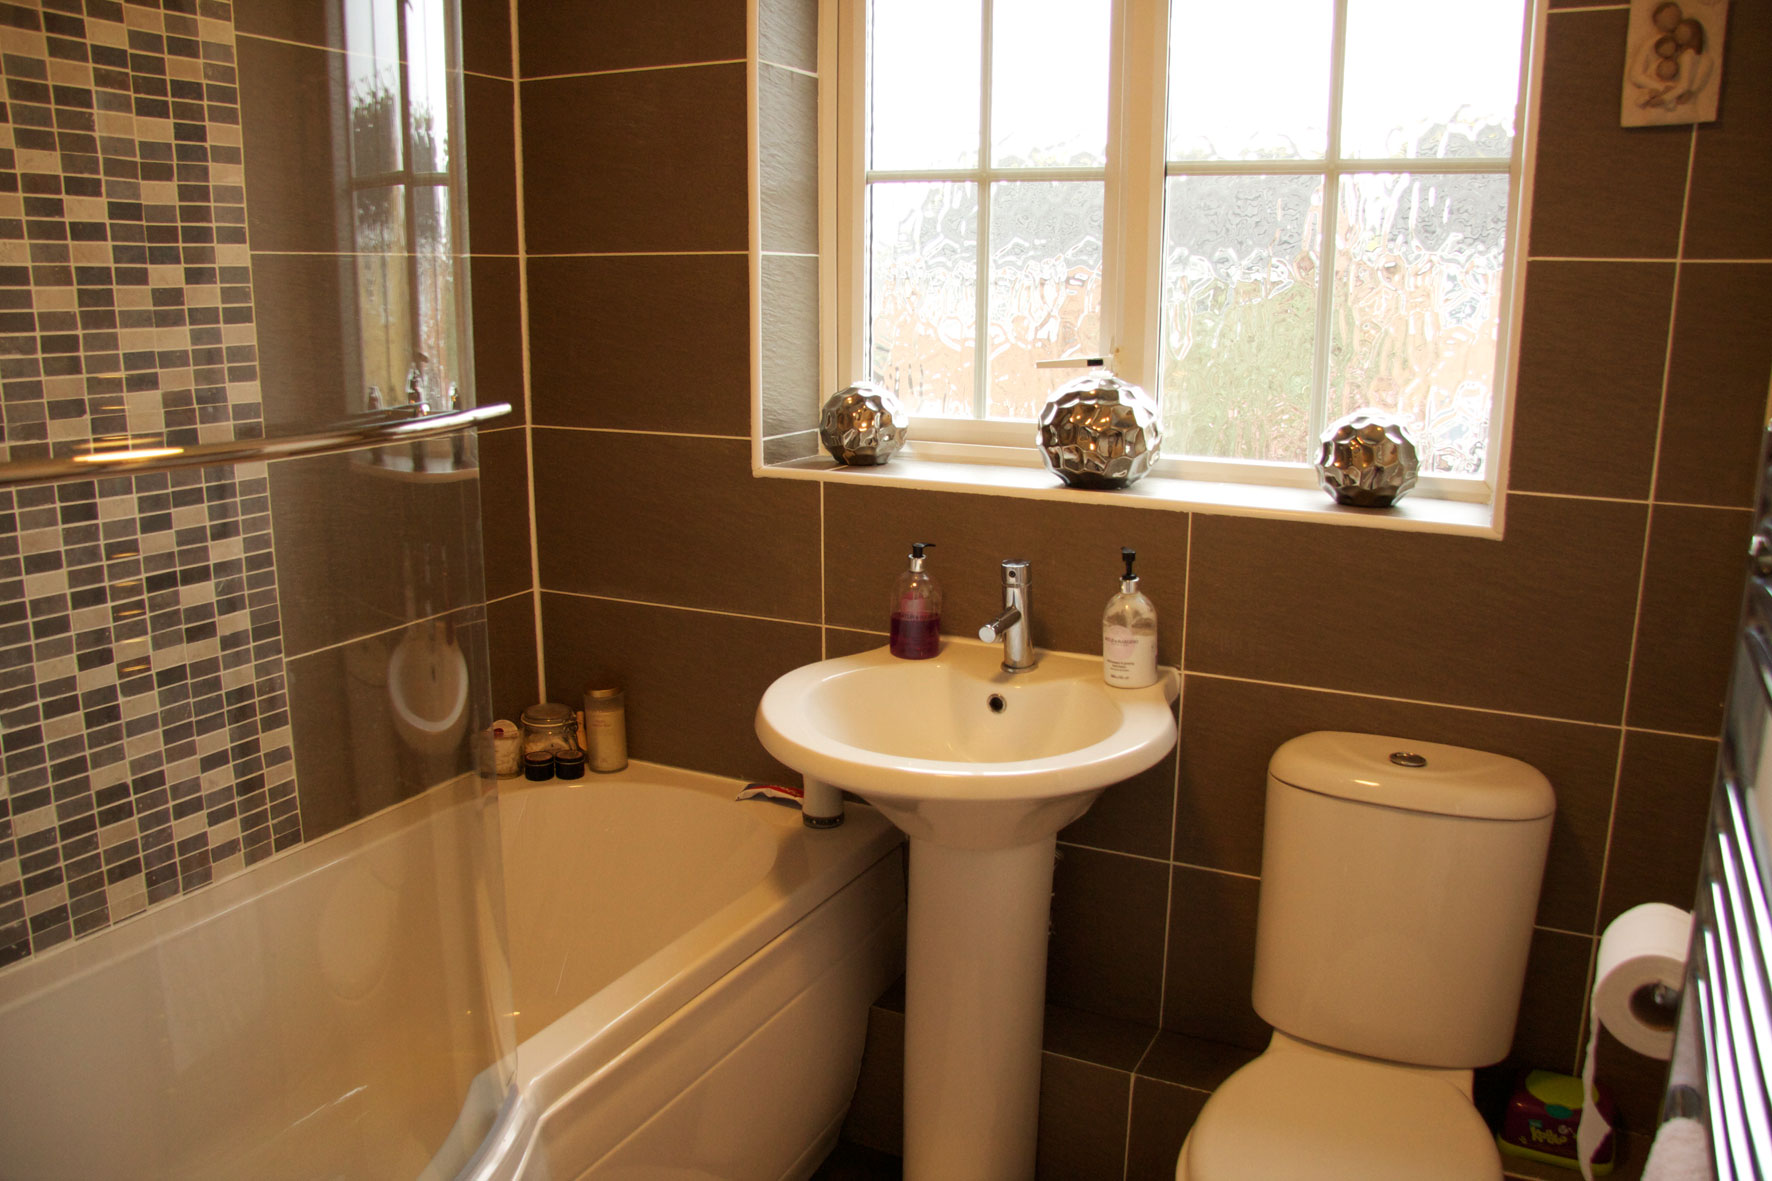 Work ac homeworks northampton based home improvements for Pictures of new bathrooms